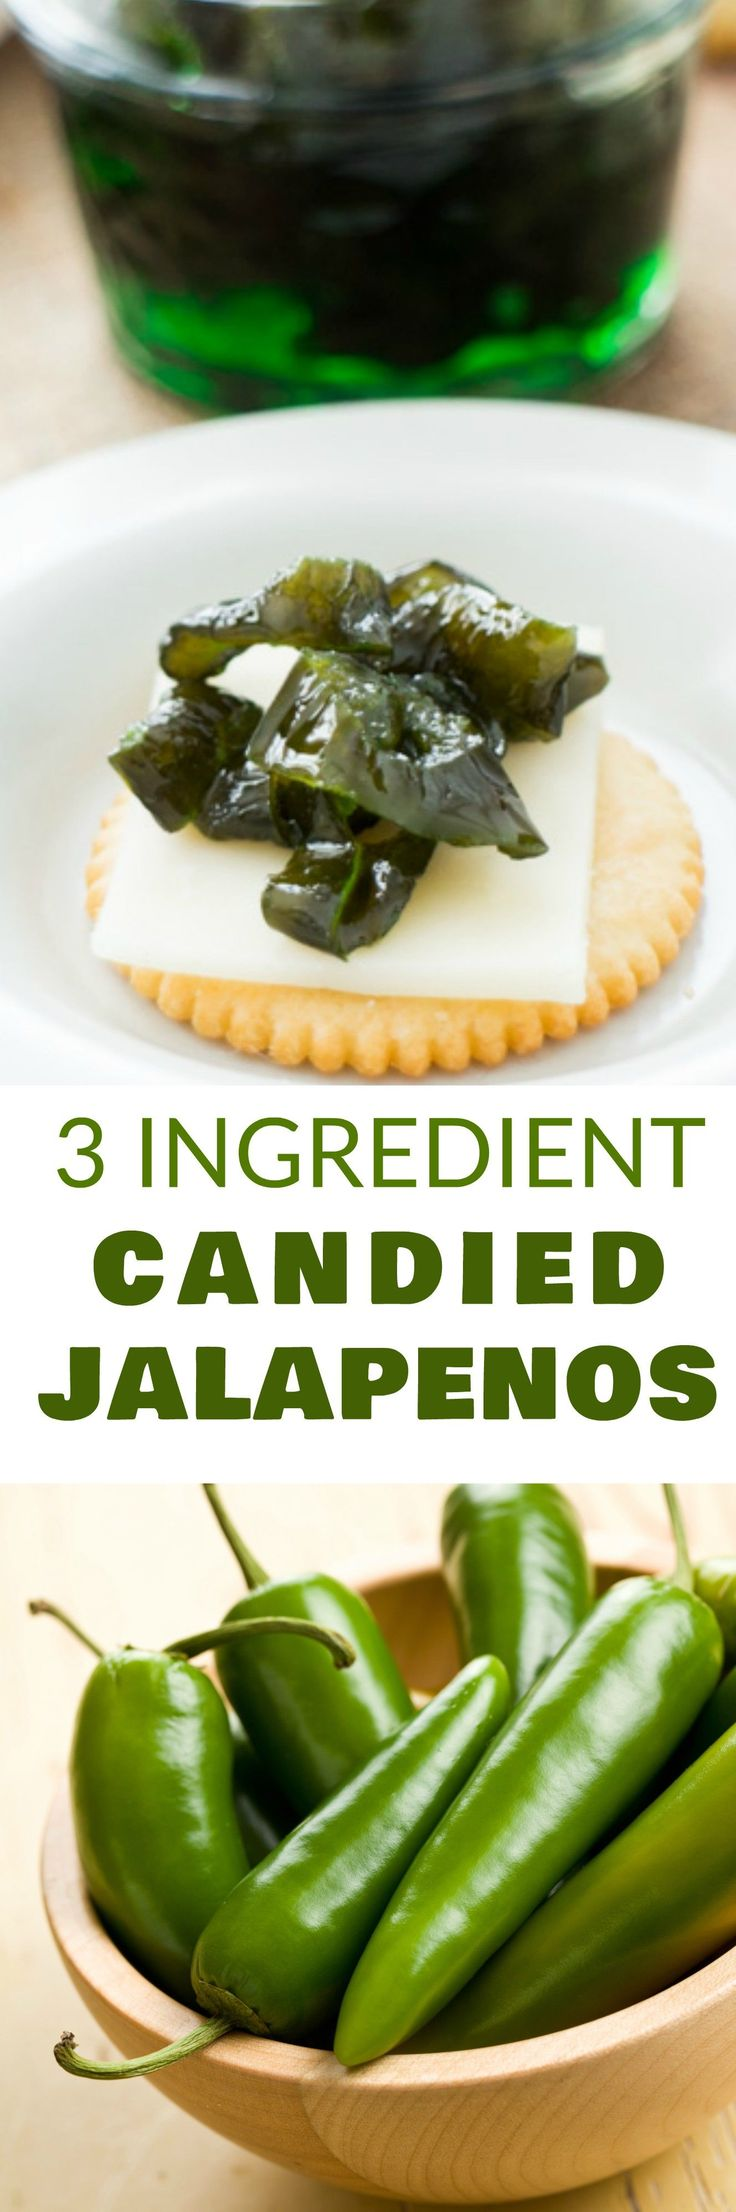 3 INGREDIENT Candied Jalapenos recipe! You only need jalapenos, sugar and water to make this delicious SWEET and SPICY recipe!  Everyone goes CRAZY when I make these with our garden peppers!  Use this as a appetizer dip, on top of crackers or in dinner di